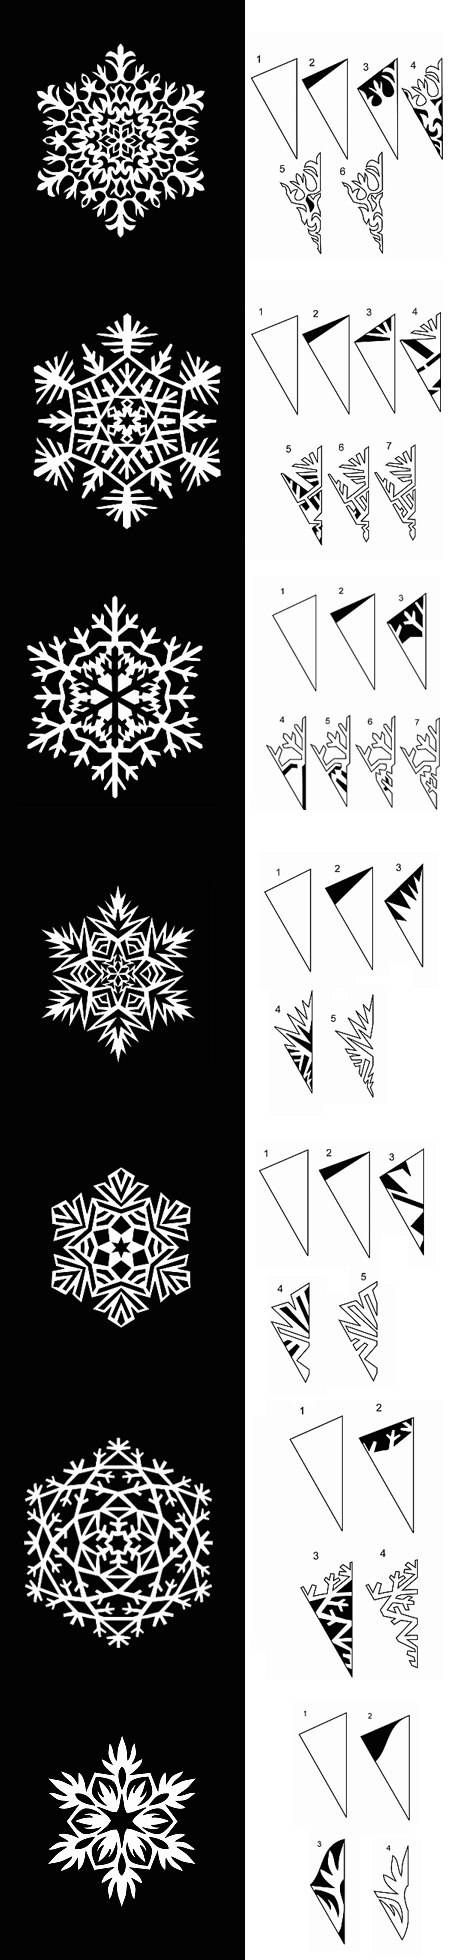 DIY Paper Snowflakes Templates DIY Projects | UsefulDIY.com Follow Us on Facebook --> https://www.facebook.com/UsefulDiy